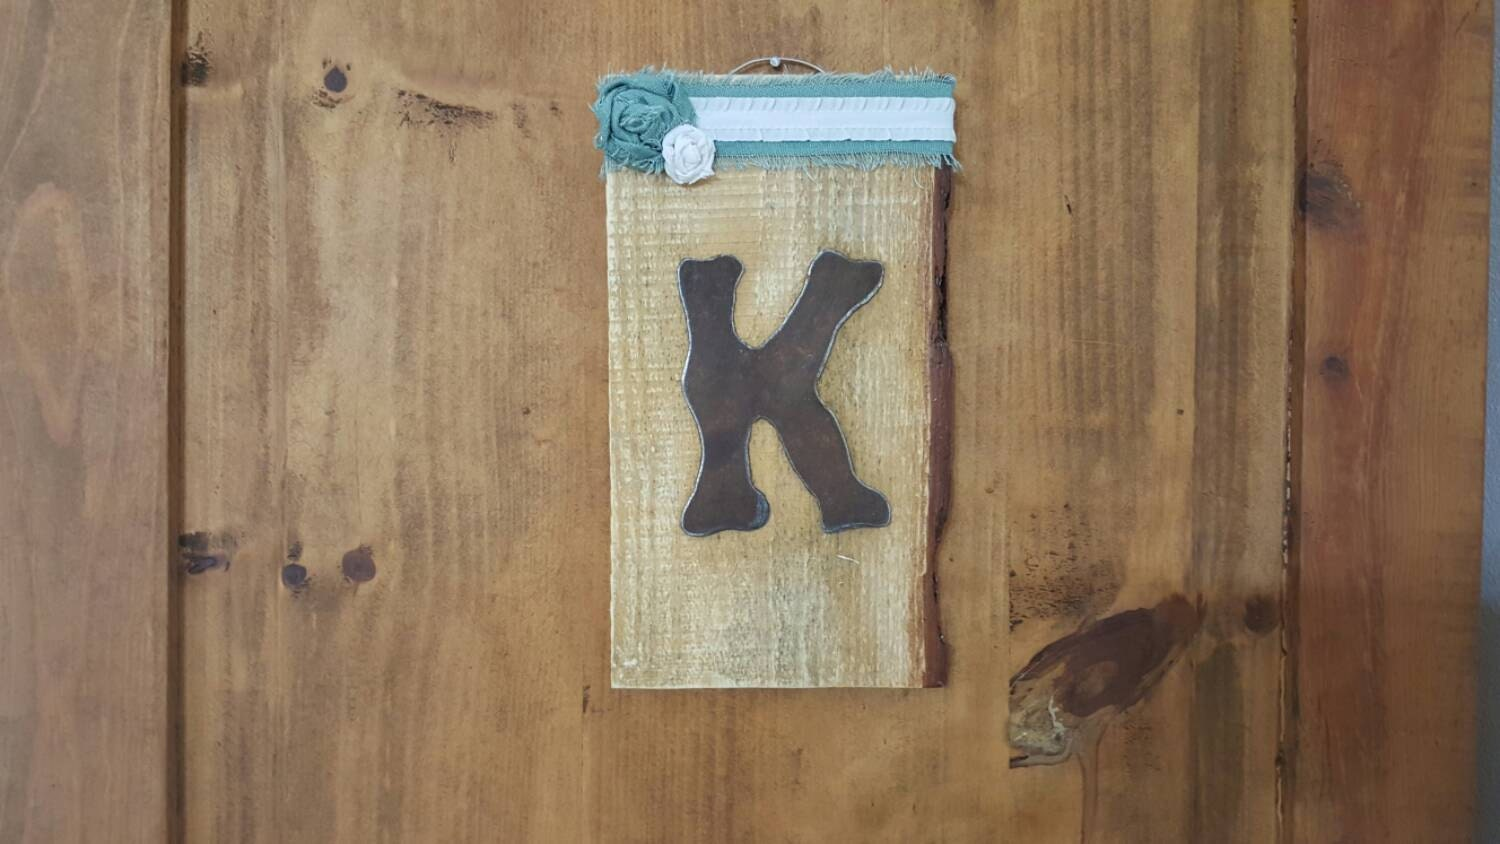 Wall Decor Letter K : Rustic metal letter k wall decor on reclaimed wood by